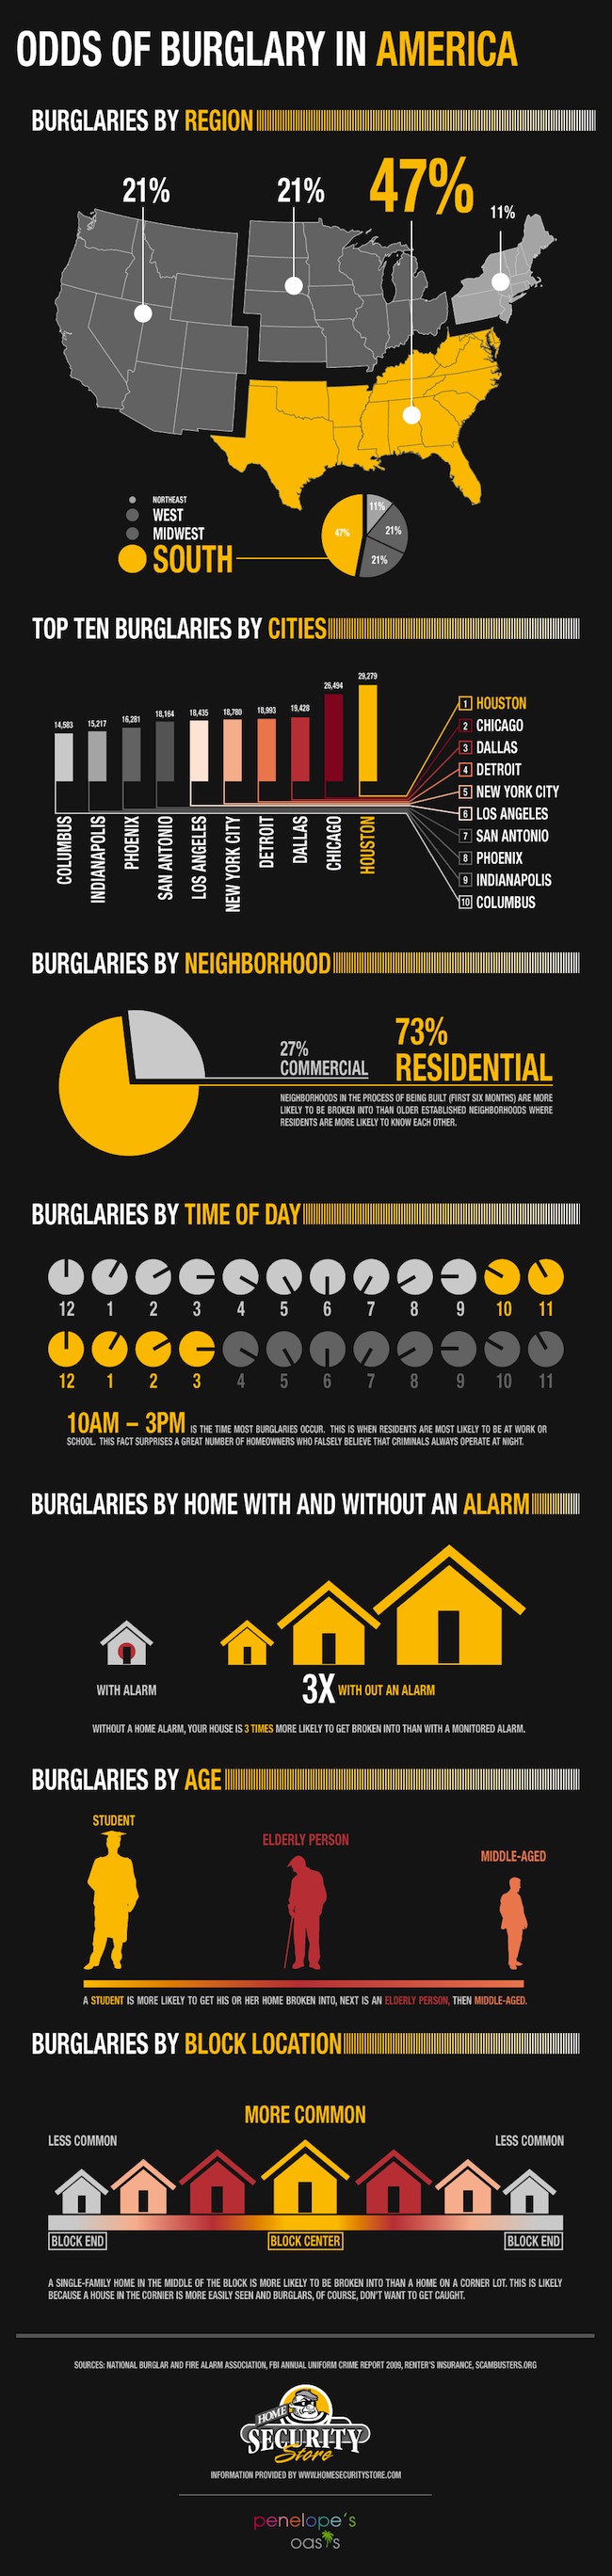 Odds of Burglary in America